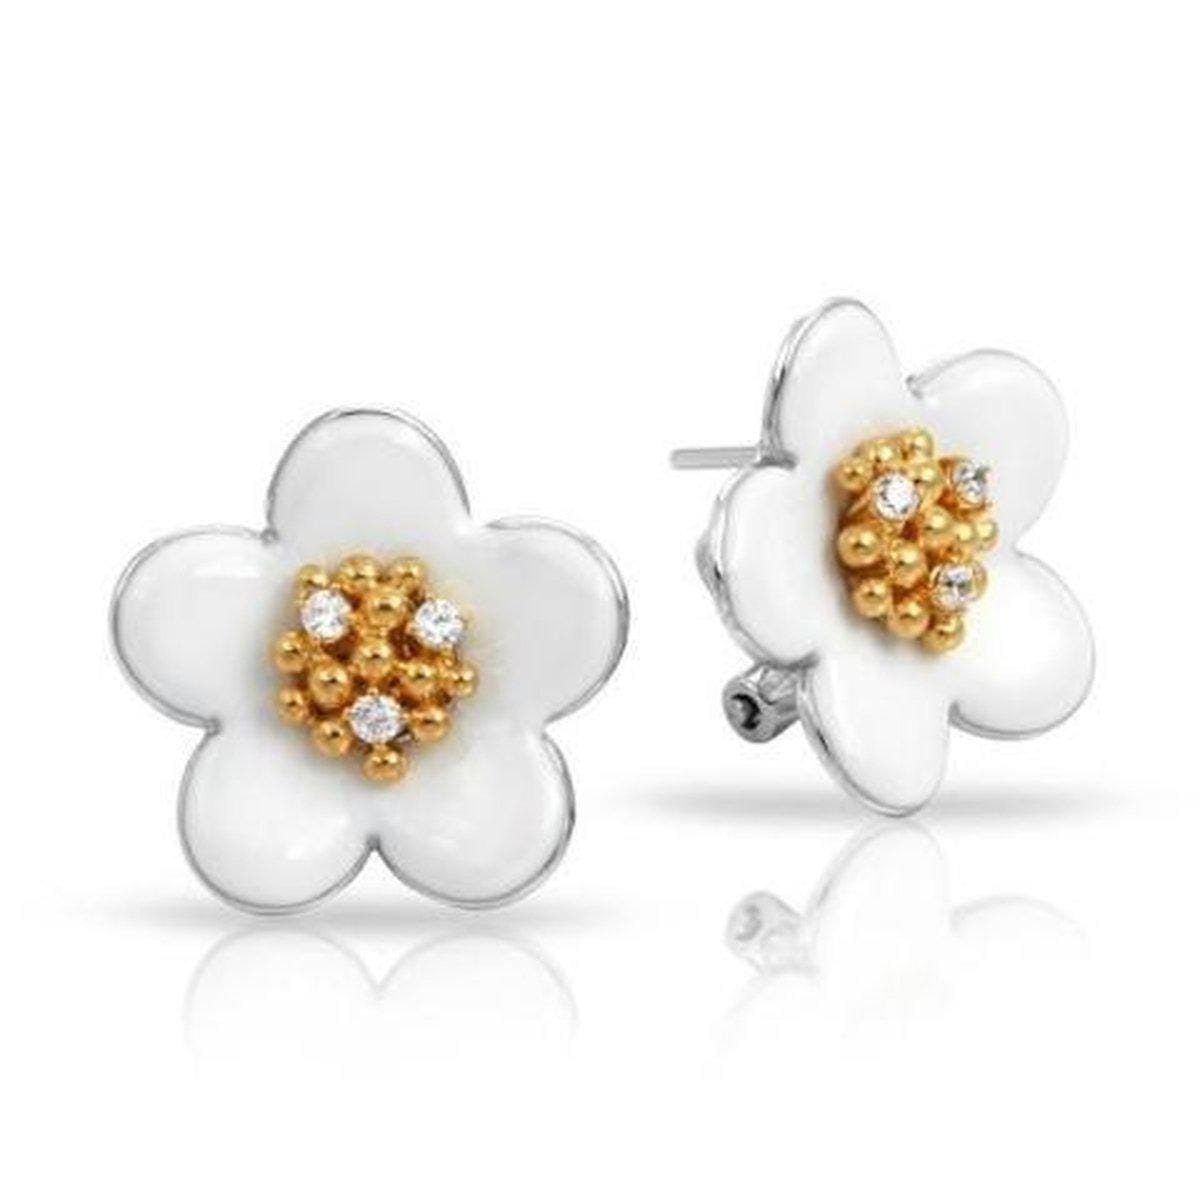 Daisy Chain White Earrings-Belle Etoile-Renee Taylor Gallery